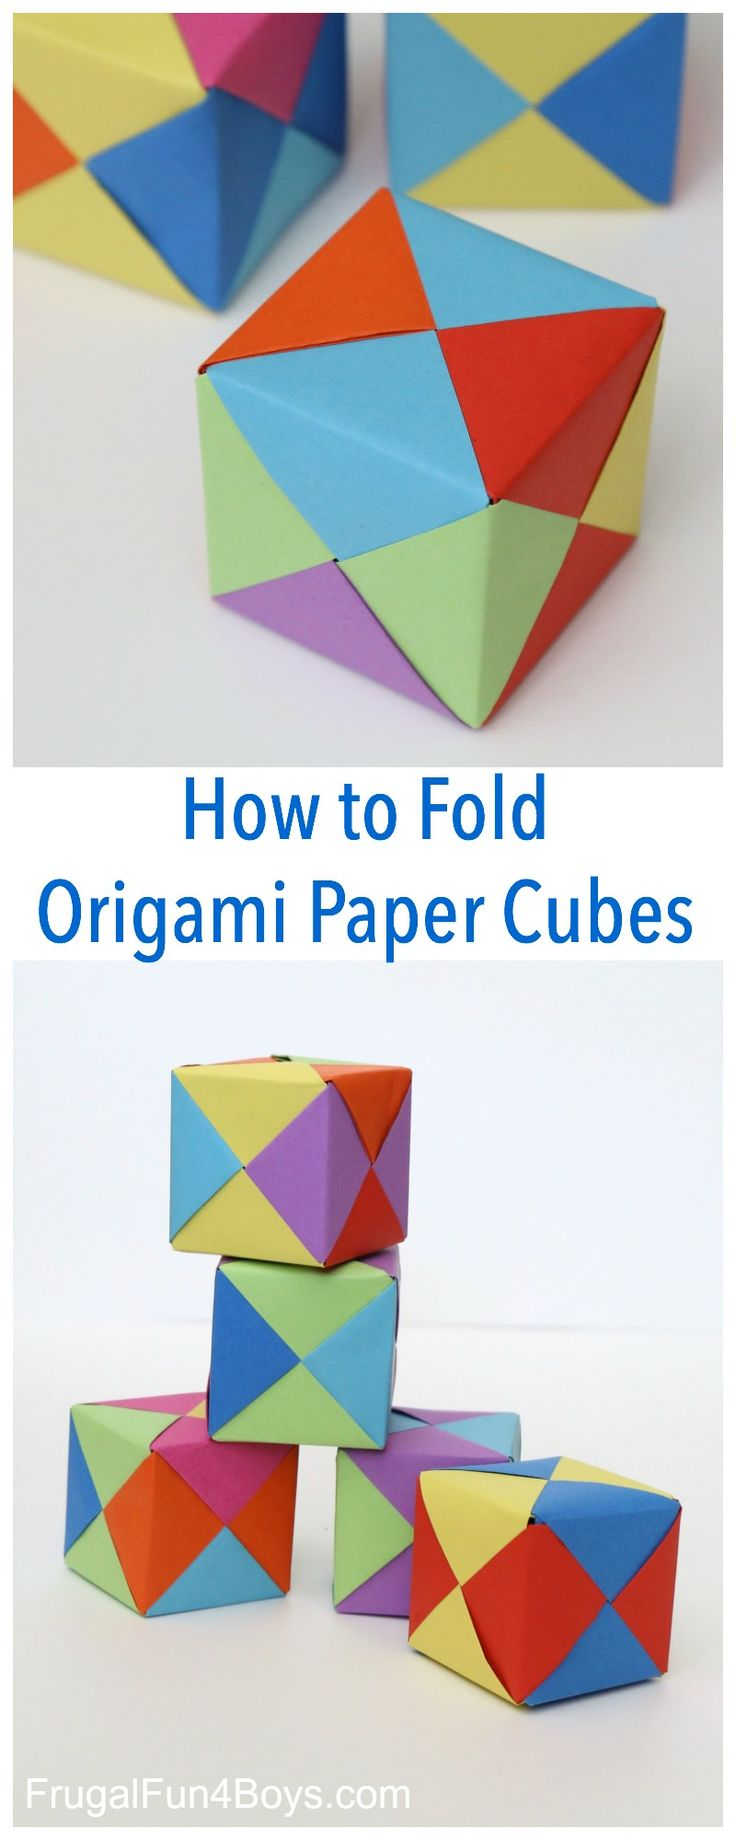 How to Fold Origami Paper Cubes - Great origami project for kids